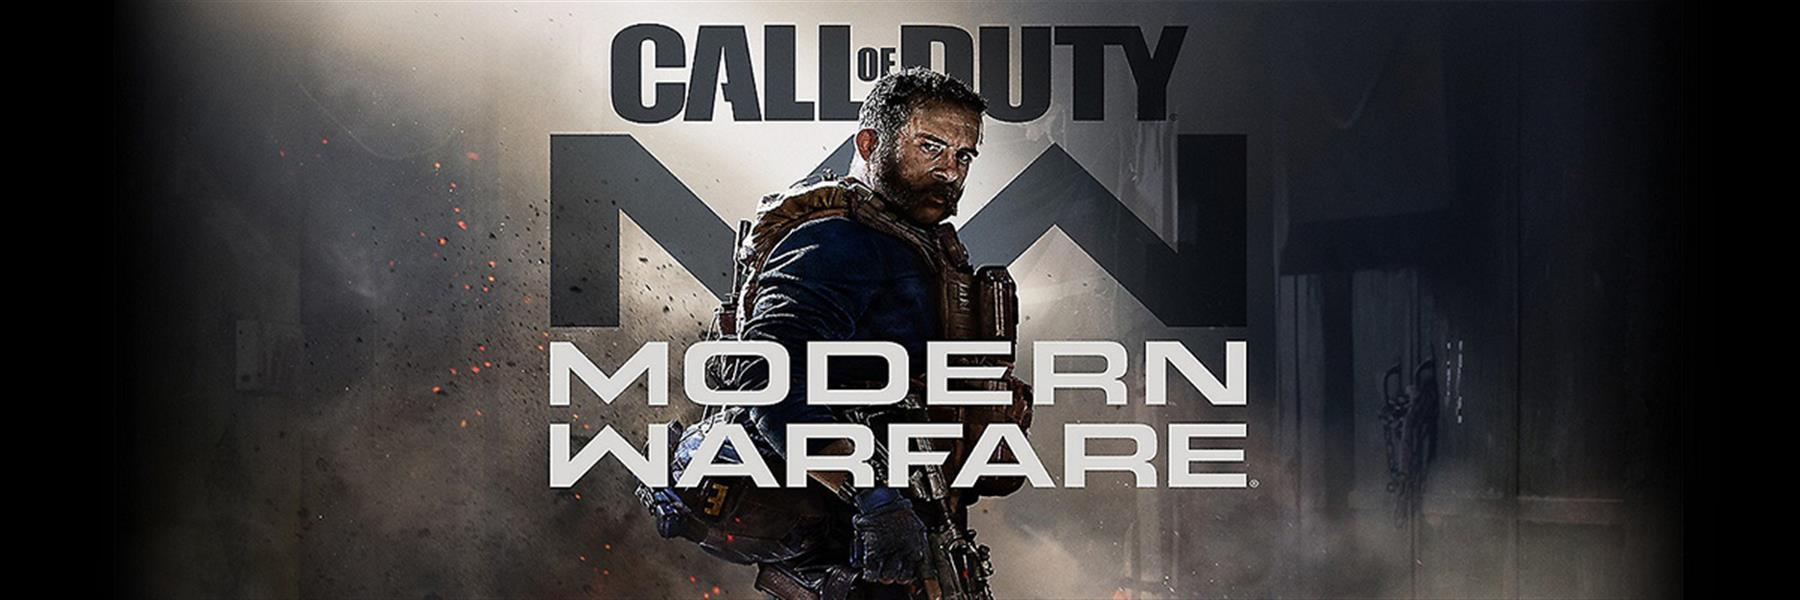 call of duty modern ware fare